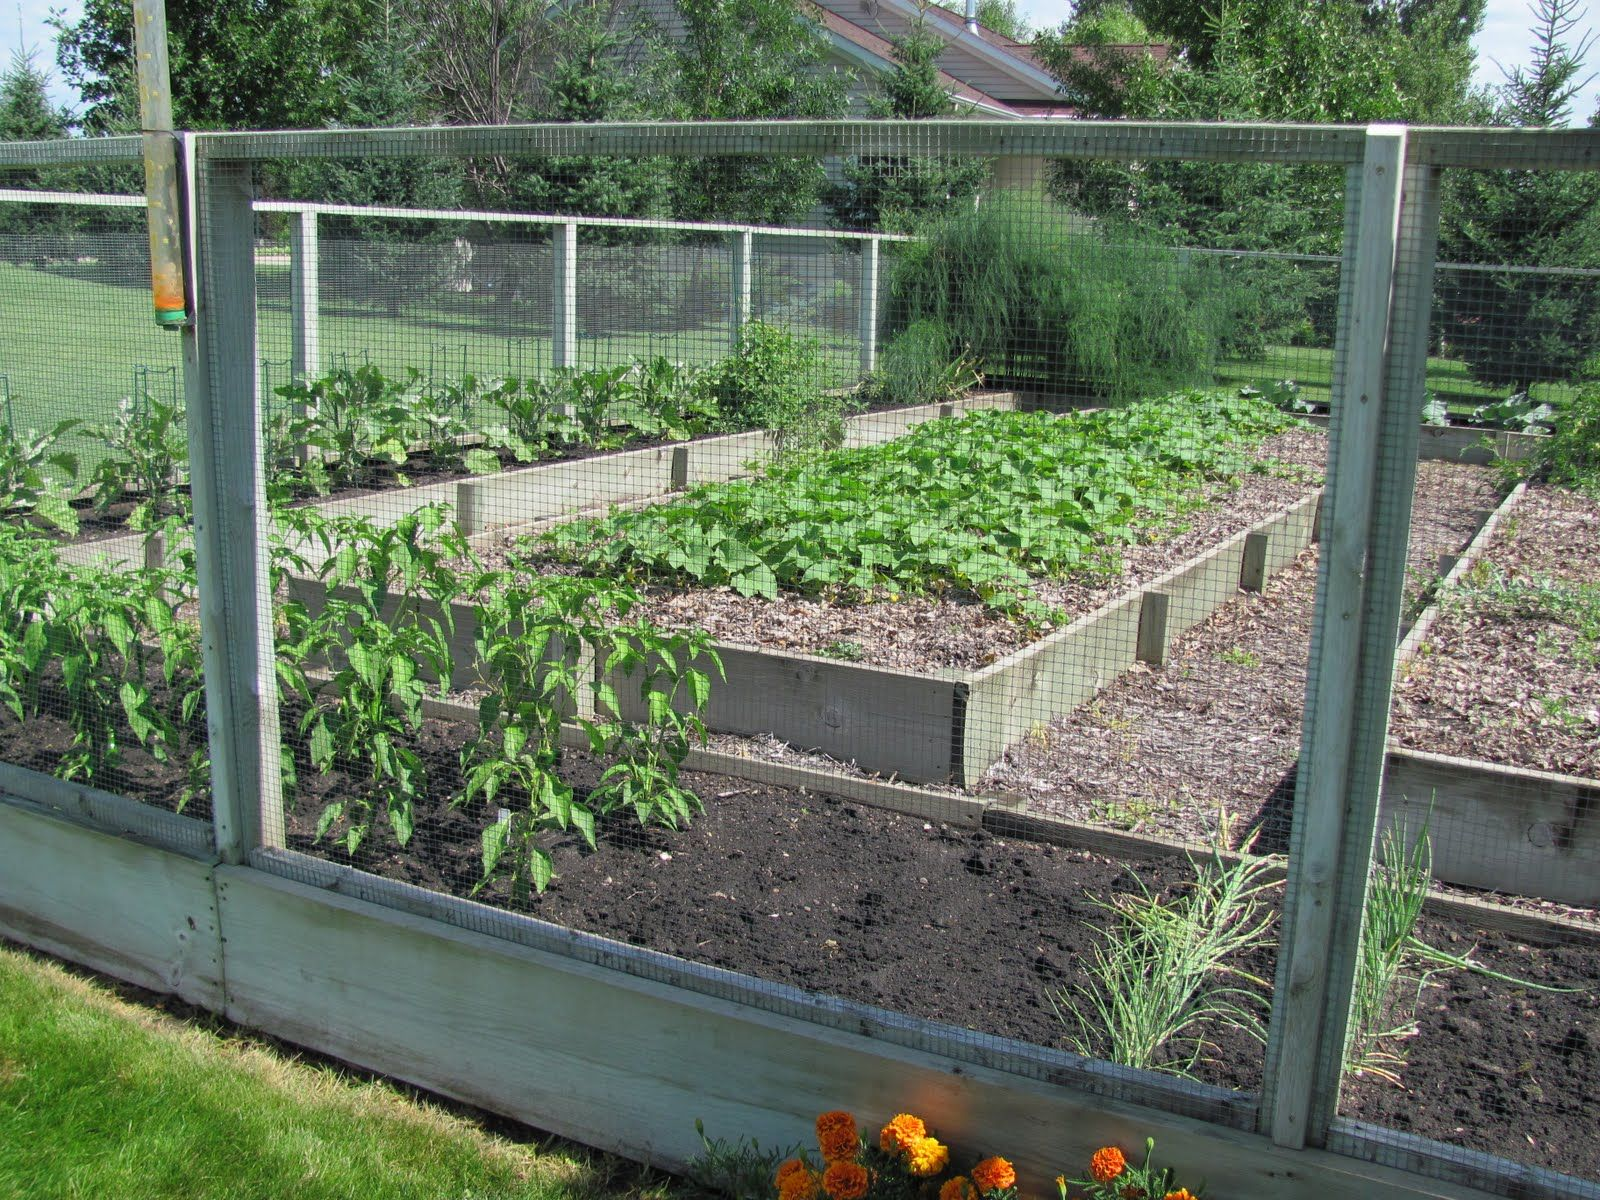 Very cool raised bed tall fenced in garden, looks deer